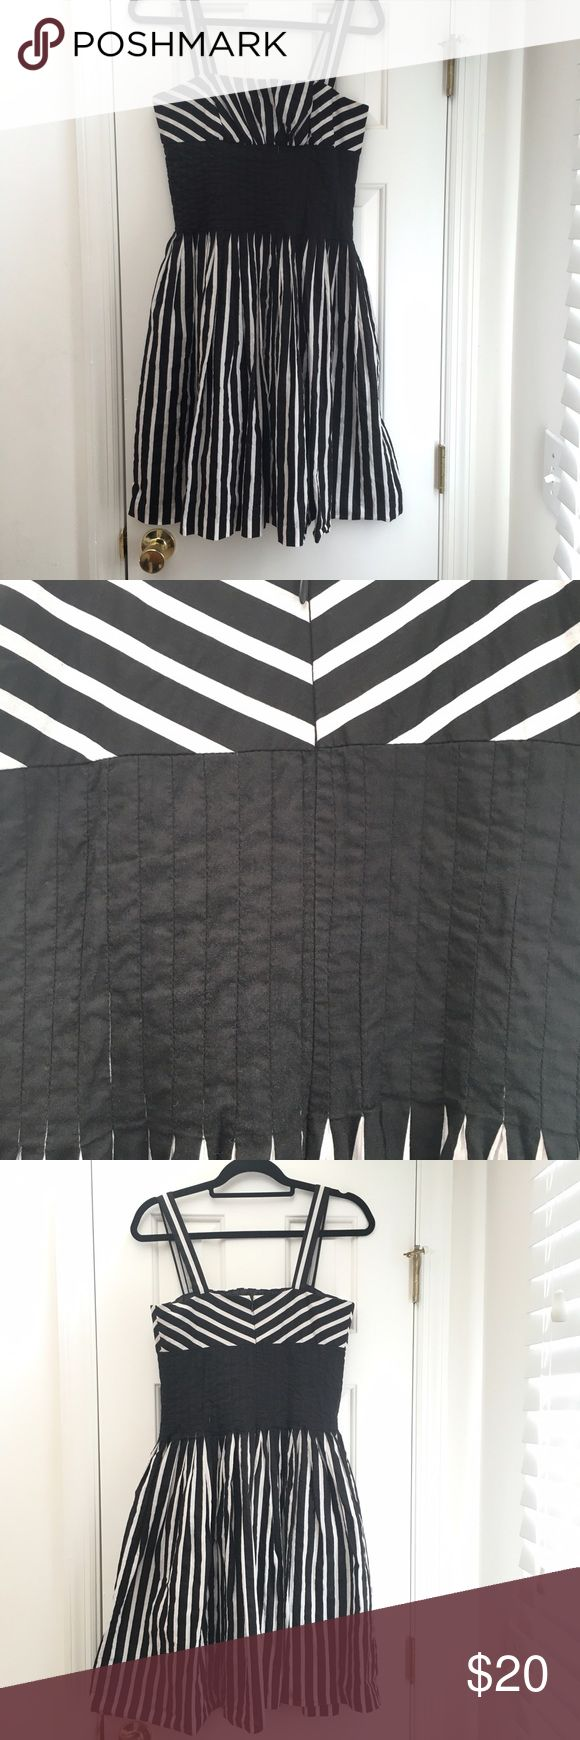 White House Black Market striped cocktail dress Adorable striped dress made by WHBM, that's been worn a few times.  It still has a lot of life in it and the stripes are so cute! This dress is a size 4. White House Black Market Dresses Midi